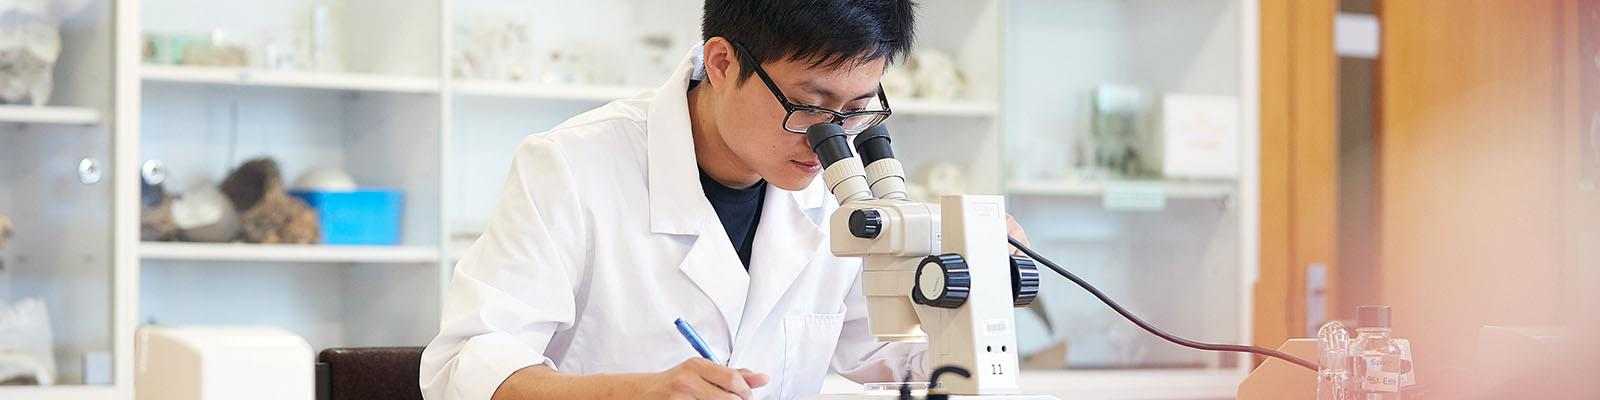 Science student examining item in microscope in a lab